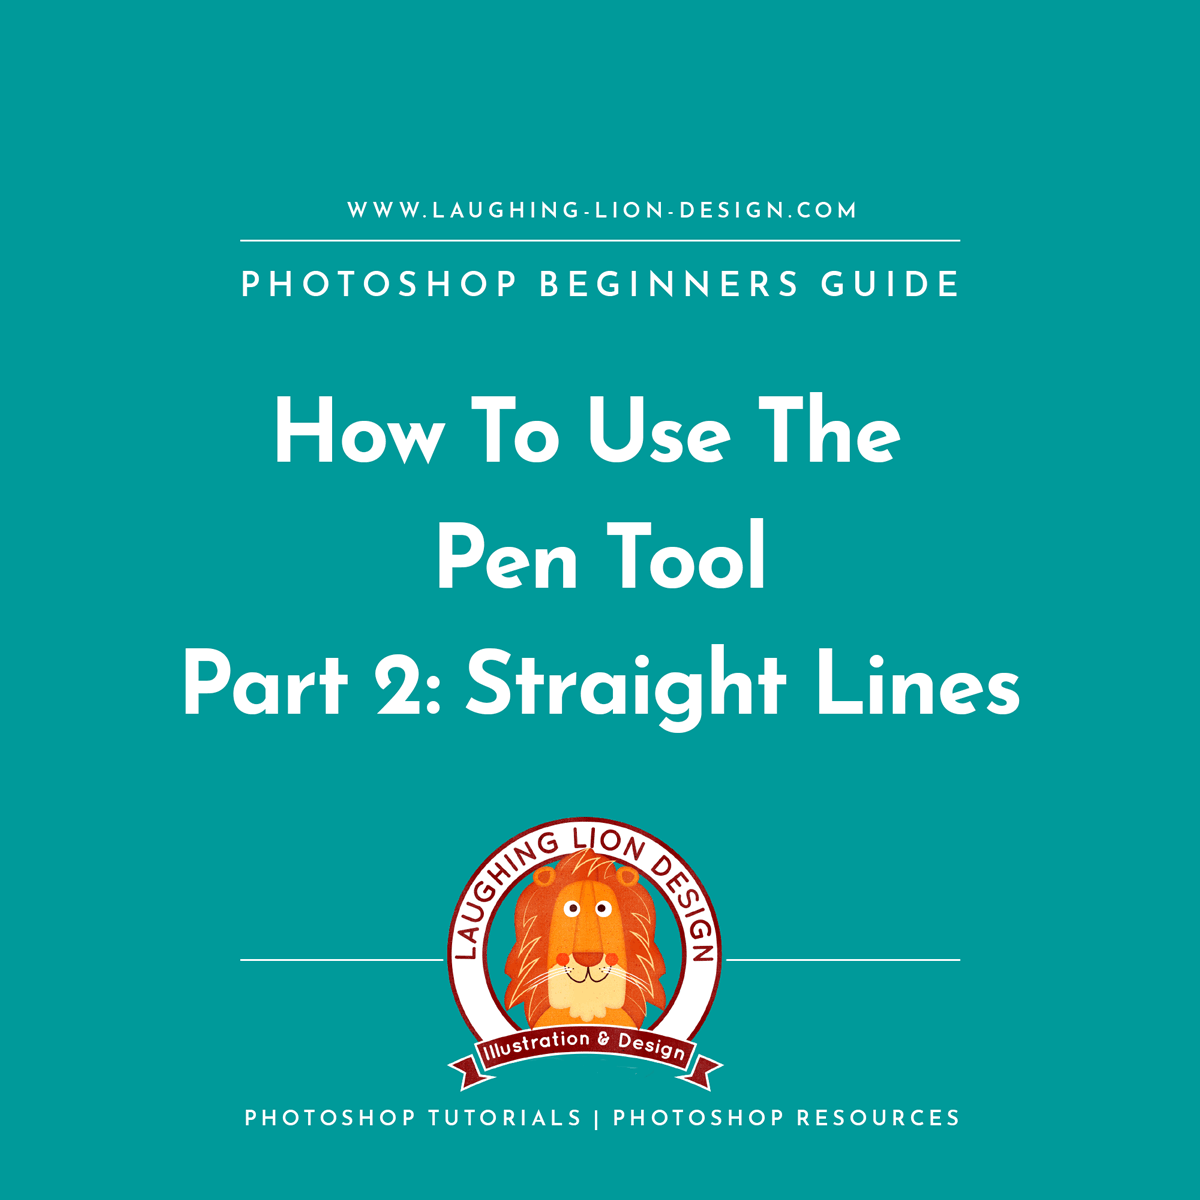 Beginners guide to using the pen tool in photoshop part 2 how to use the pen tool in photoshop baditri Gallery